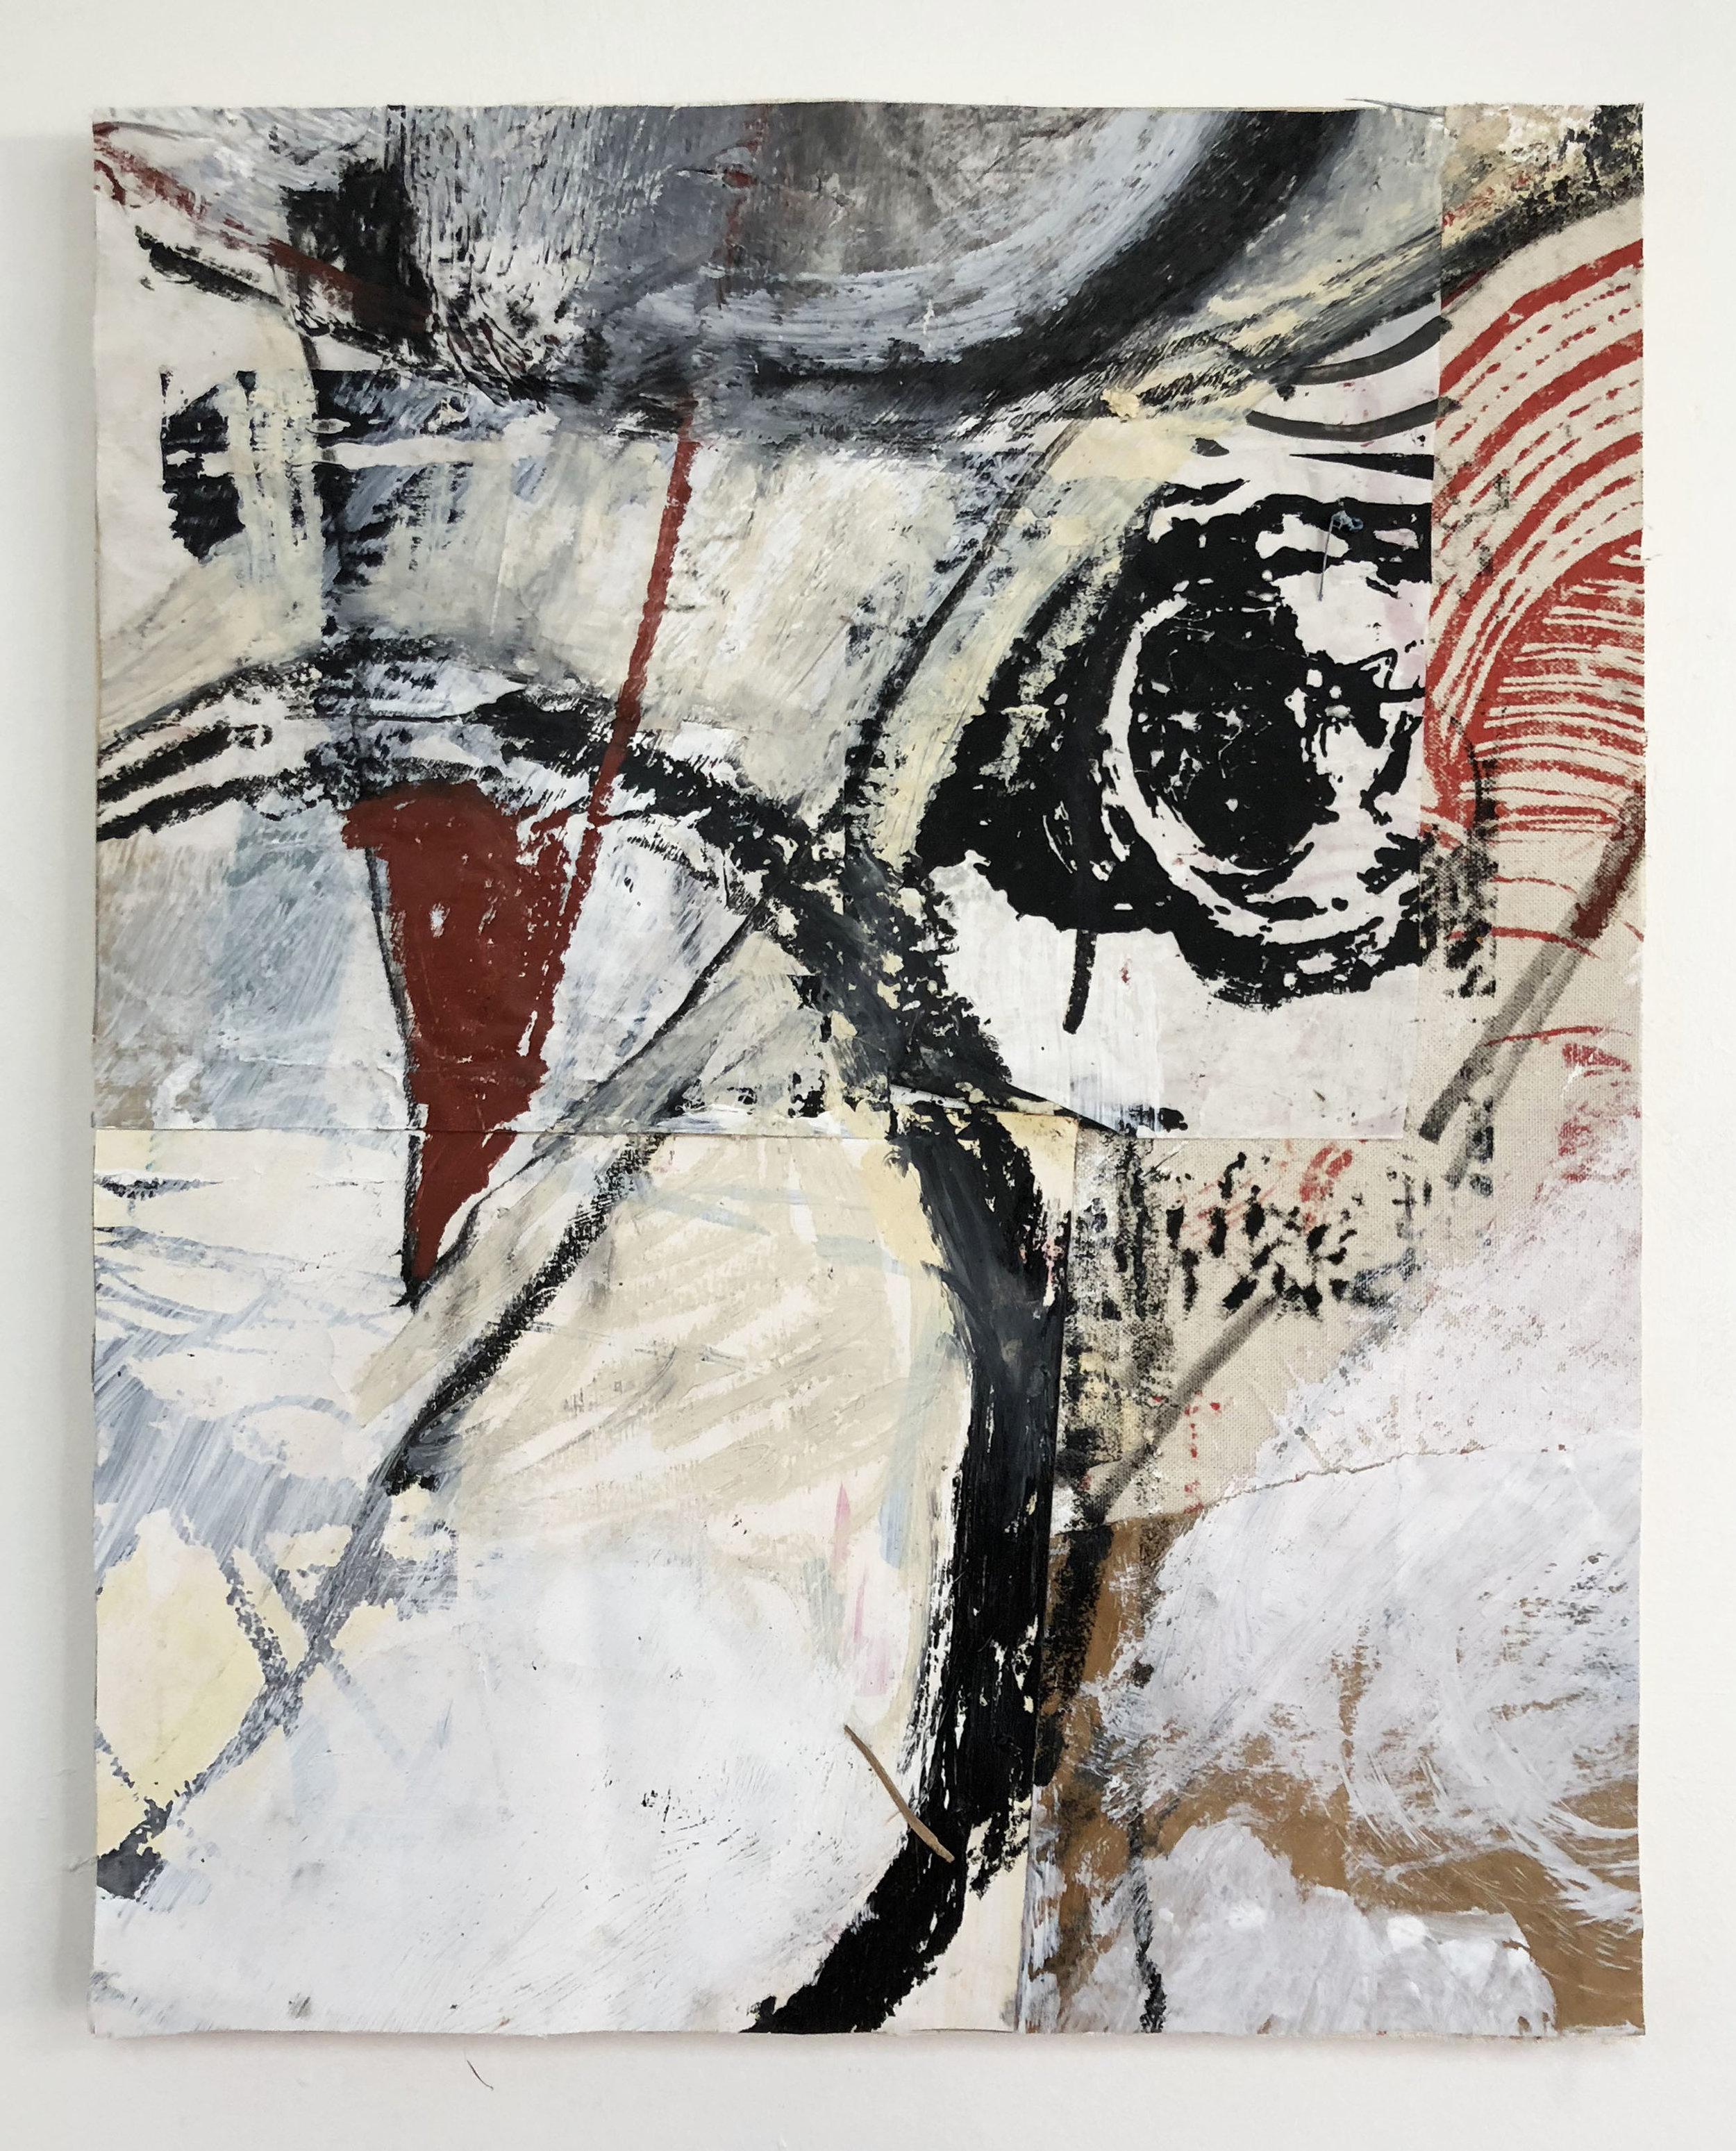 Fast-forward, Rewind & Pause,  2016-18, Collage, charcoal, acrylic, oil, ink, conté, serigraphy on panel